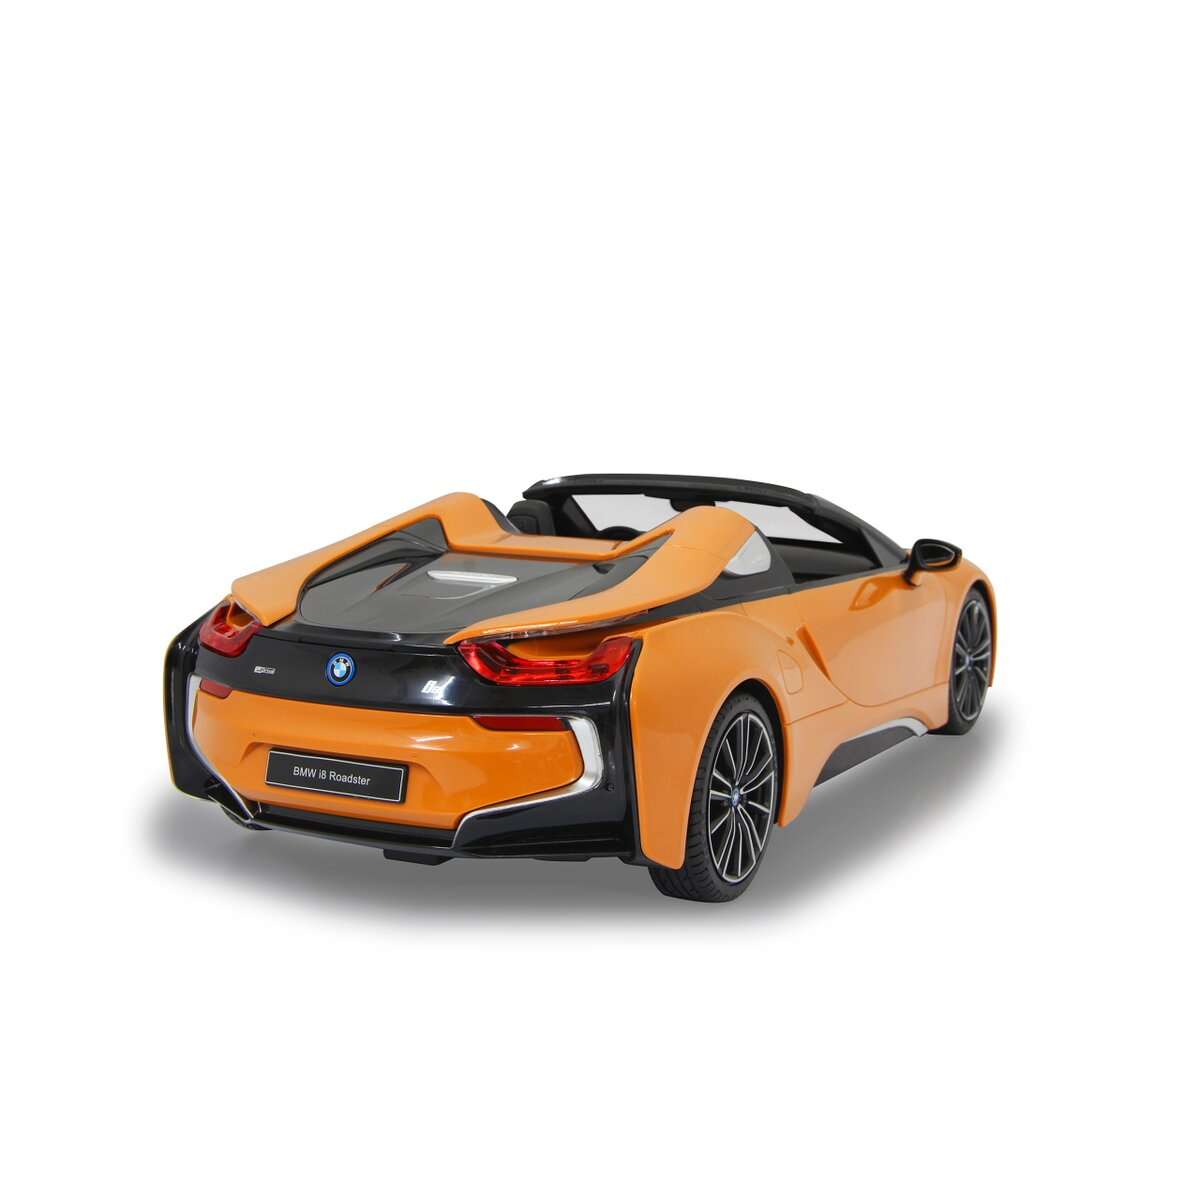 Jamara BMW I8 Roadster 1:12 orange 2,4G A